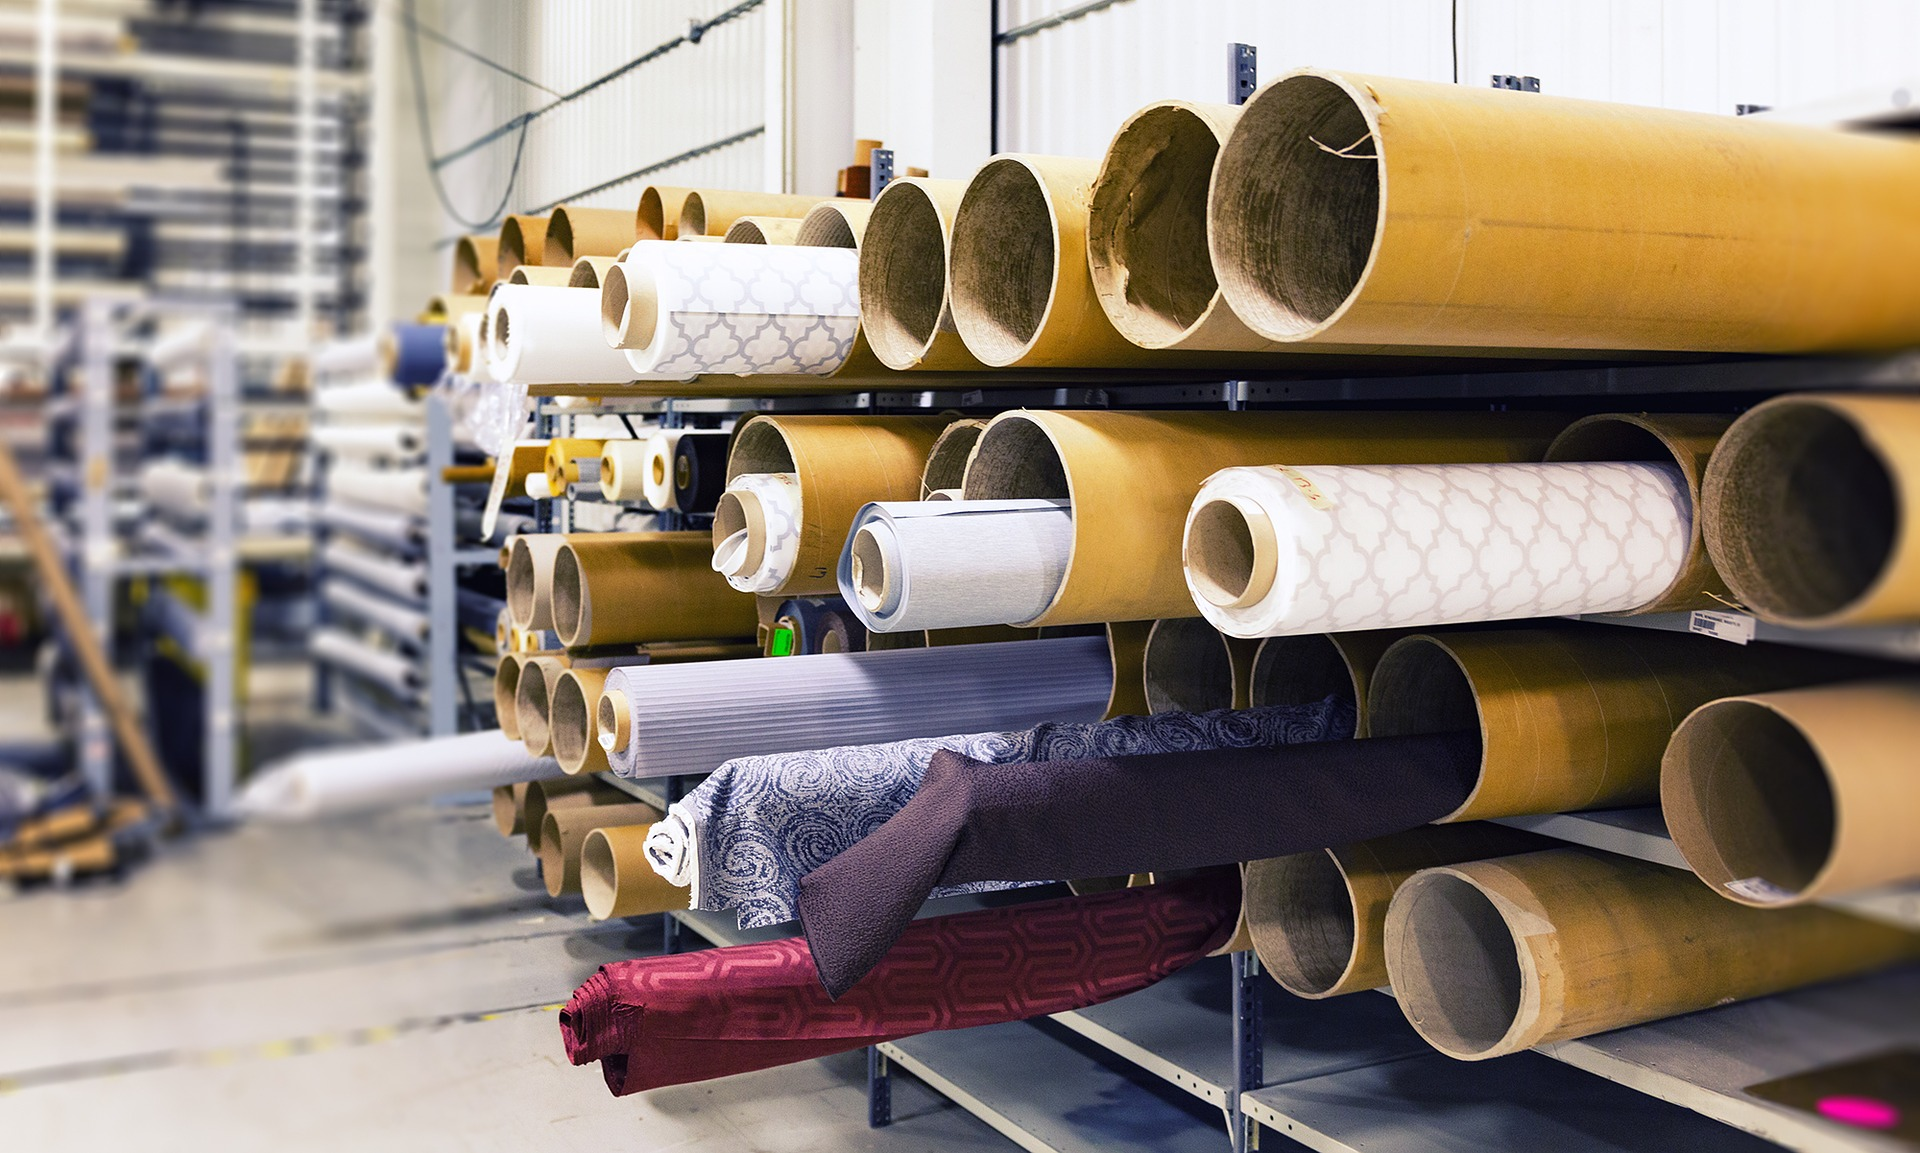 Rolls of fabric on a storage cart in a factory.